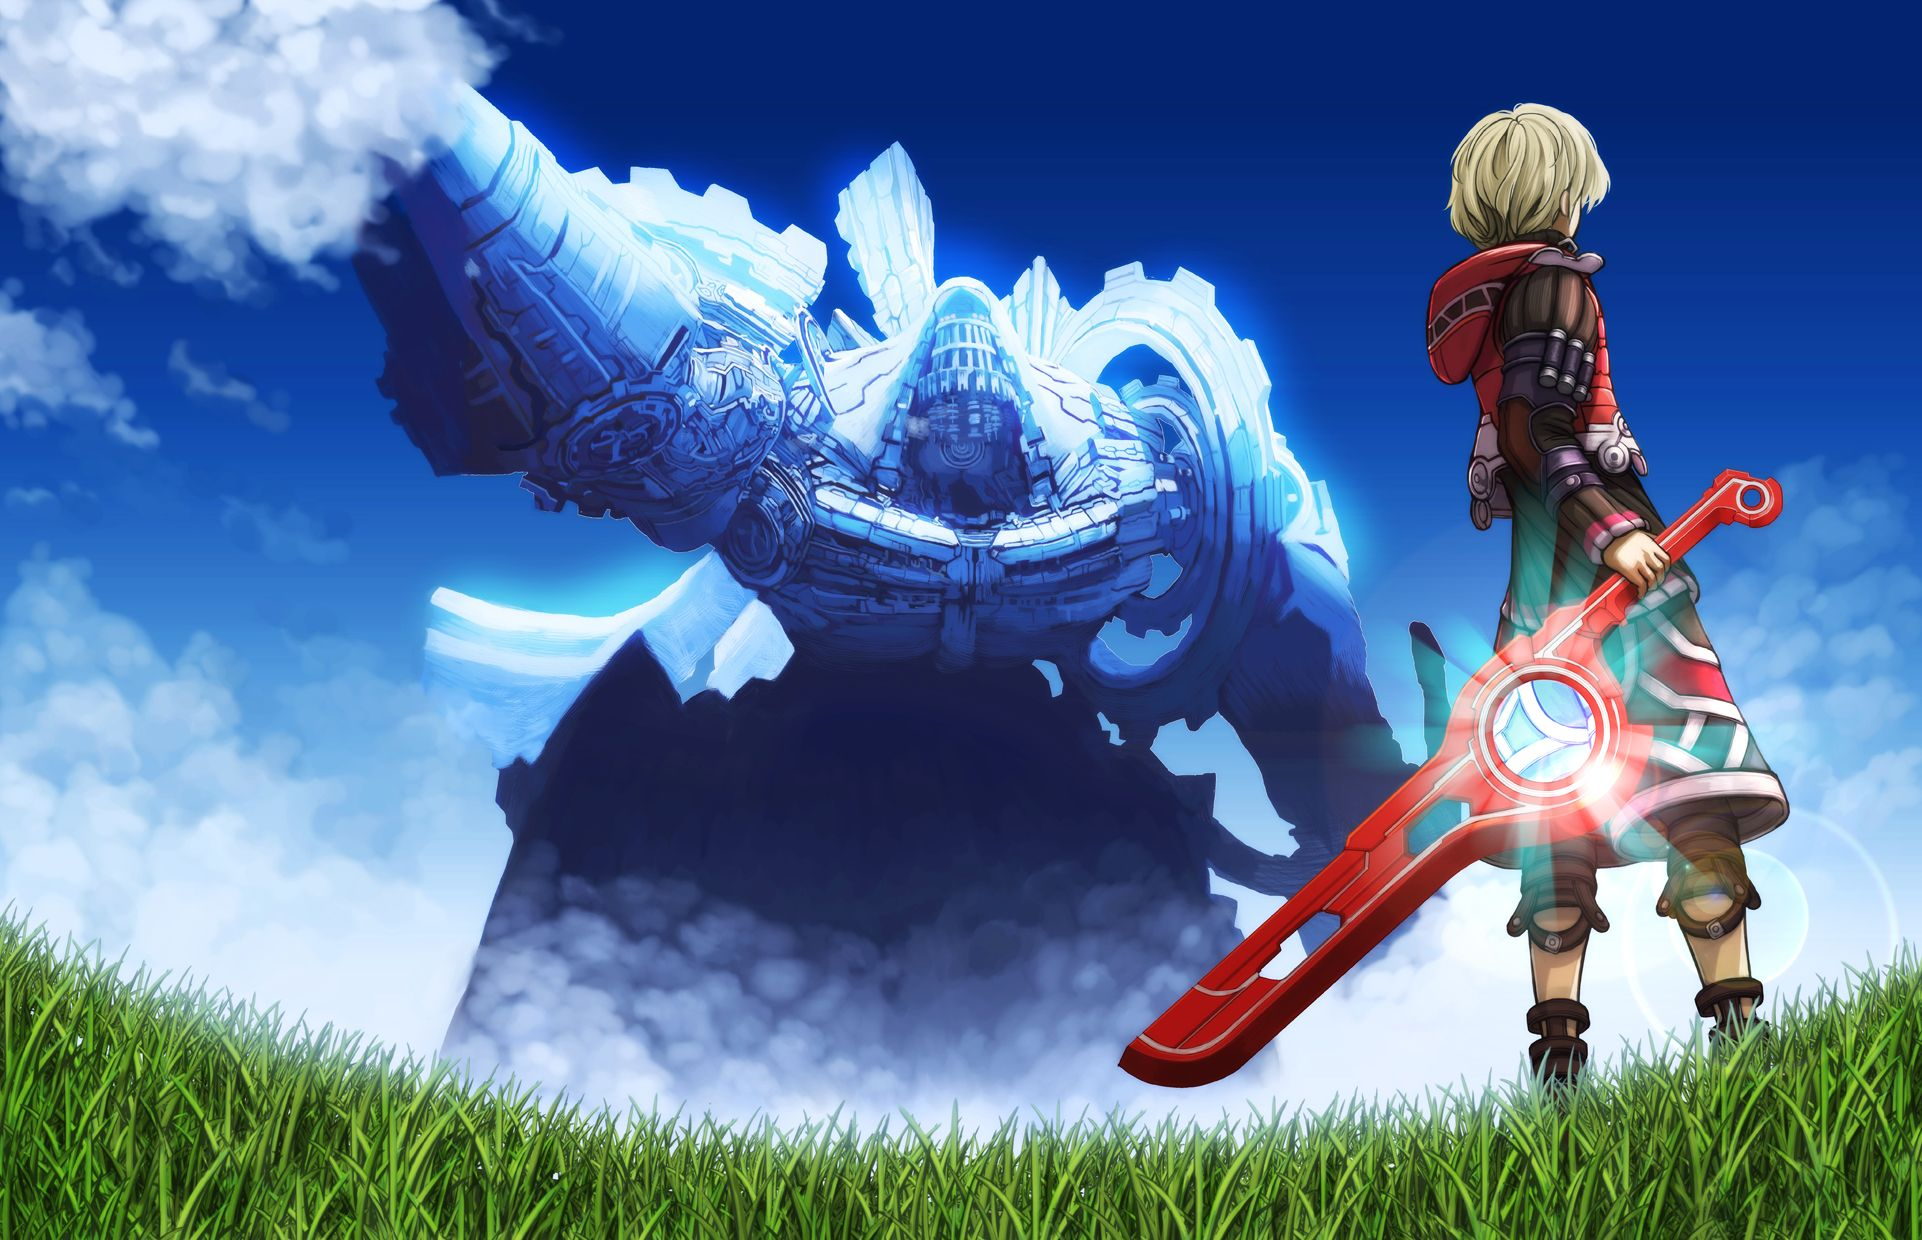 Xenoblade Chronicles Mechonis Shulk Xenoblade Chronicles